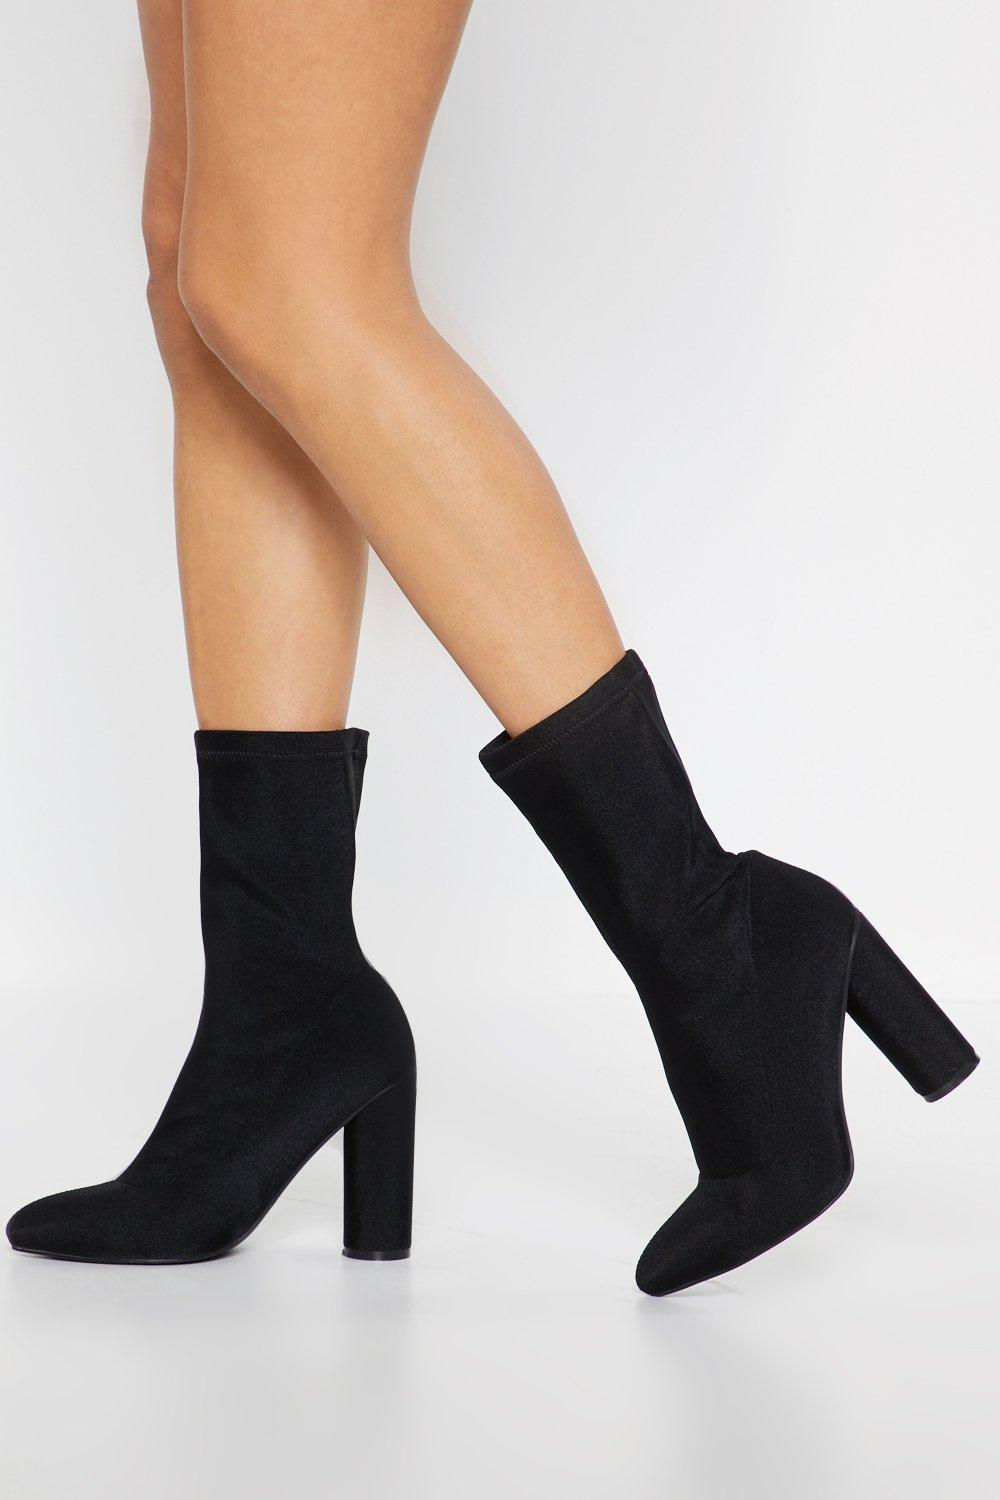 Bottines Chaussettes Reste Tranquille by Nasty Gal